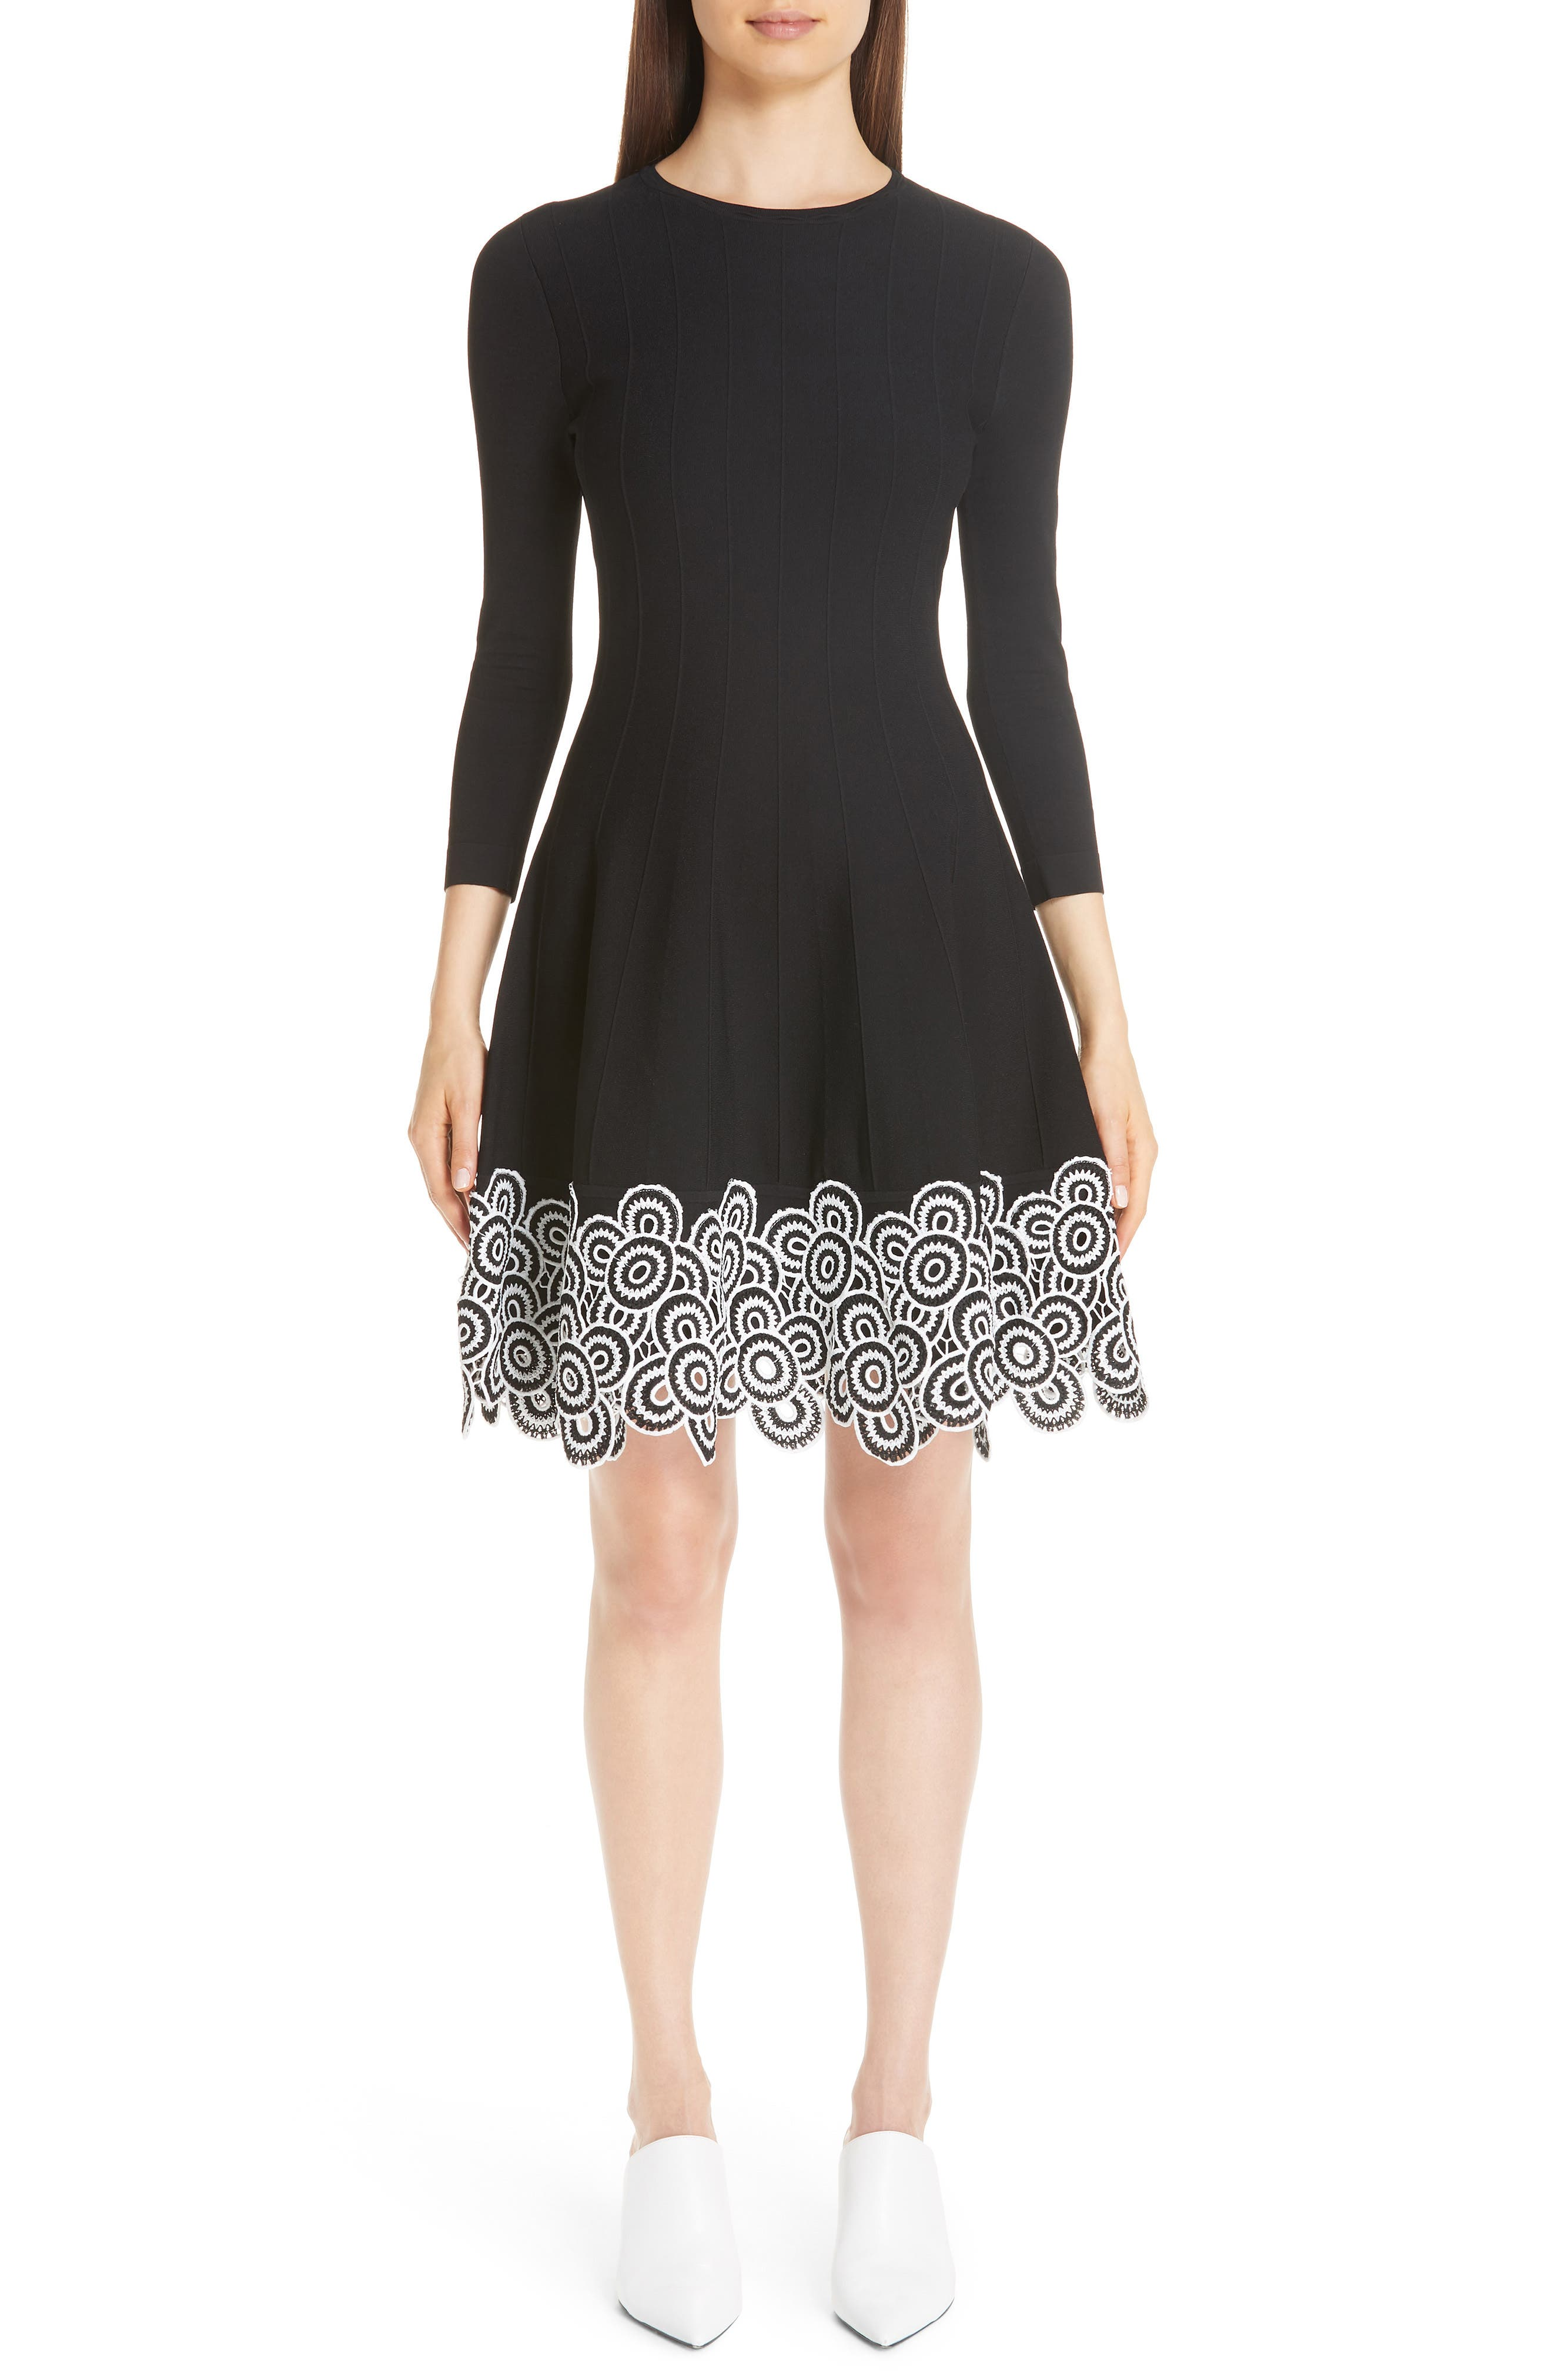 LELA ROSE Crewneck Long-Sleeve Fit-And-Flare Dress W/Circle Lace Hem in Black / White